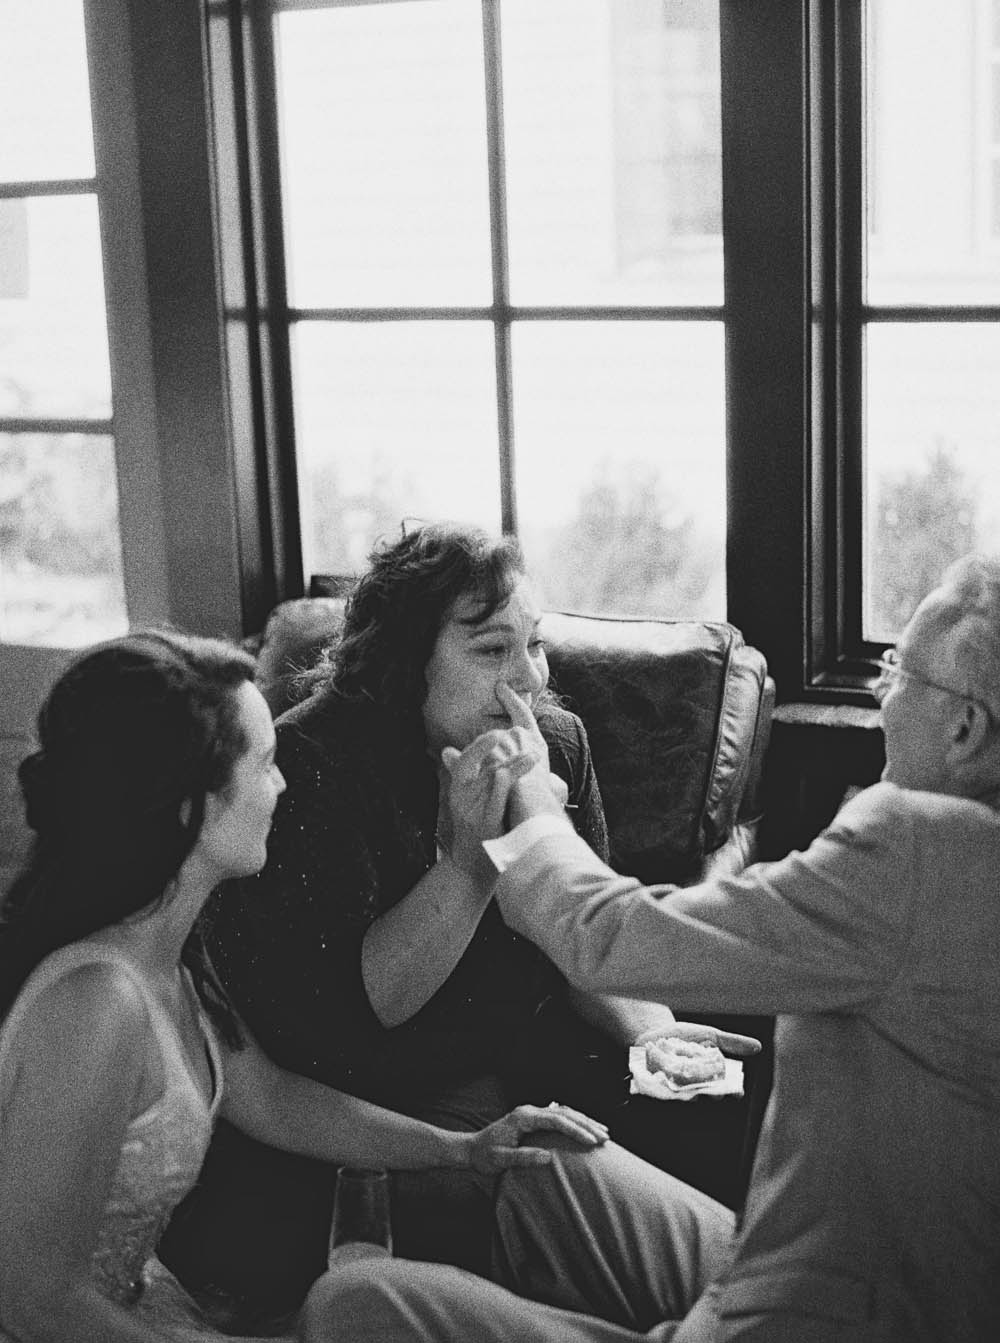 homestead plantation film wedding photographer natural documentary franklin photographers ©2015abigailbobophtoography-41.jpg